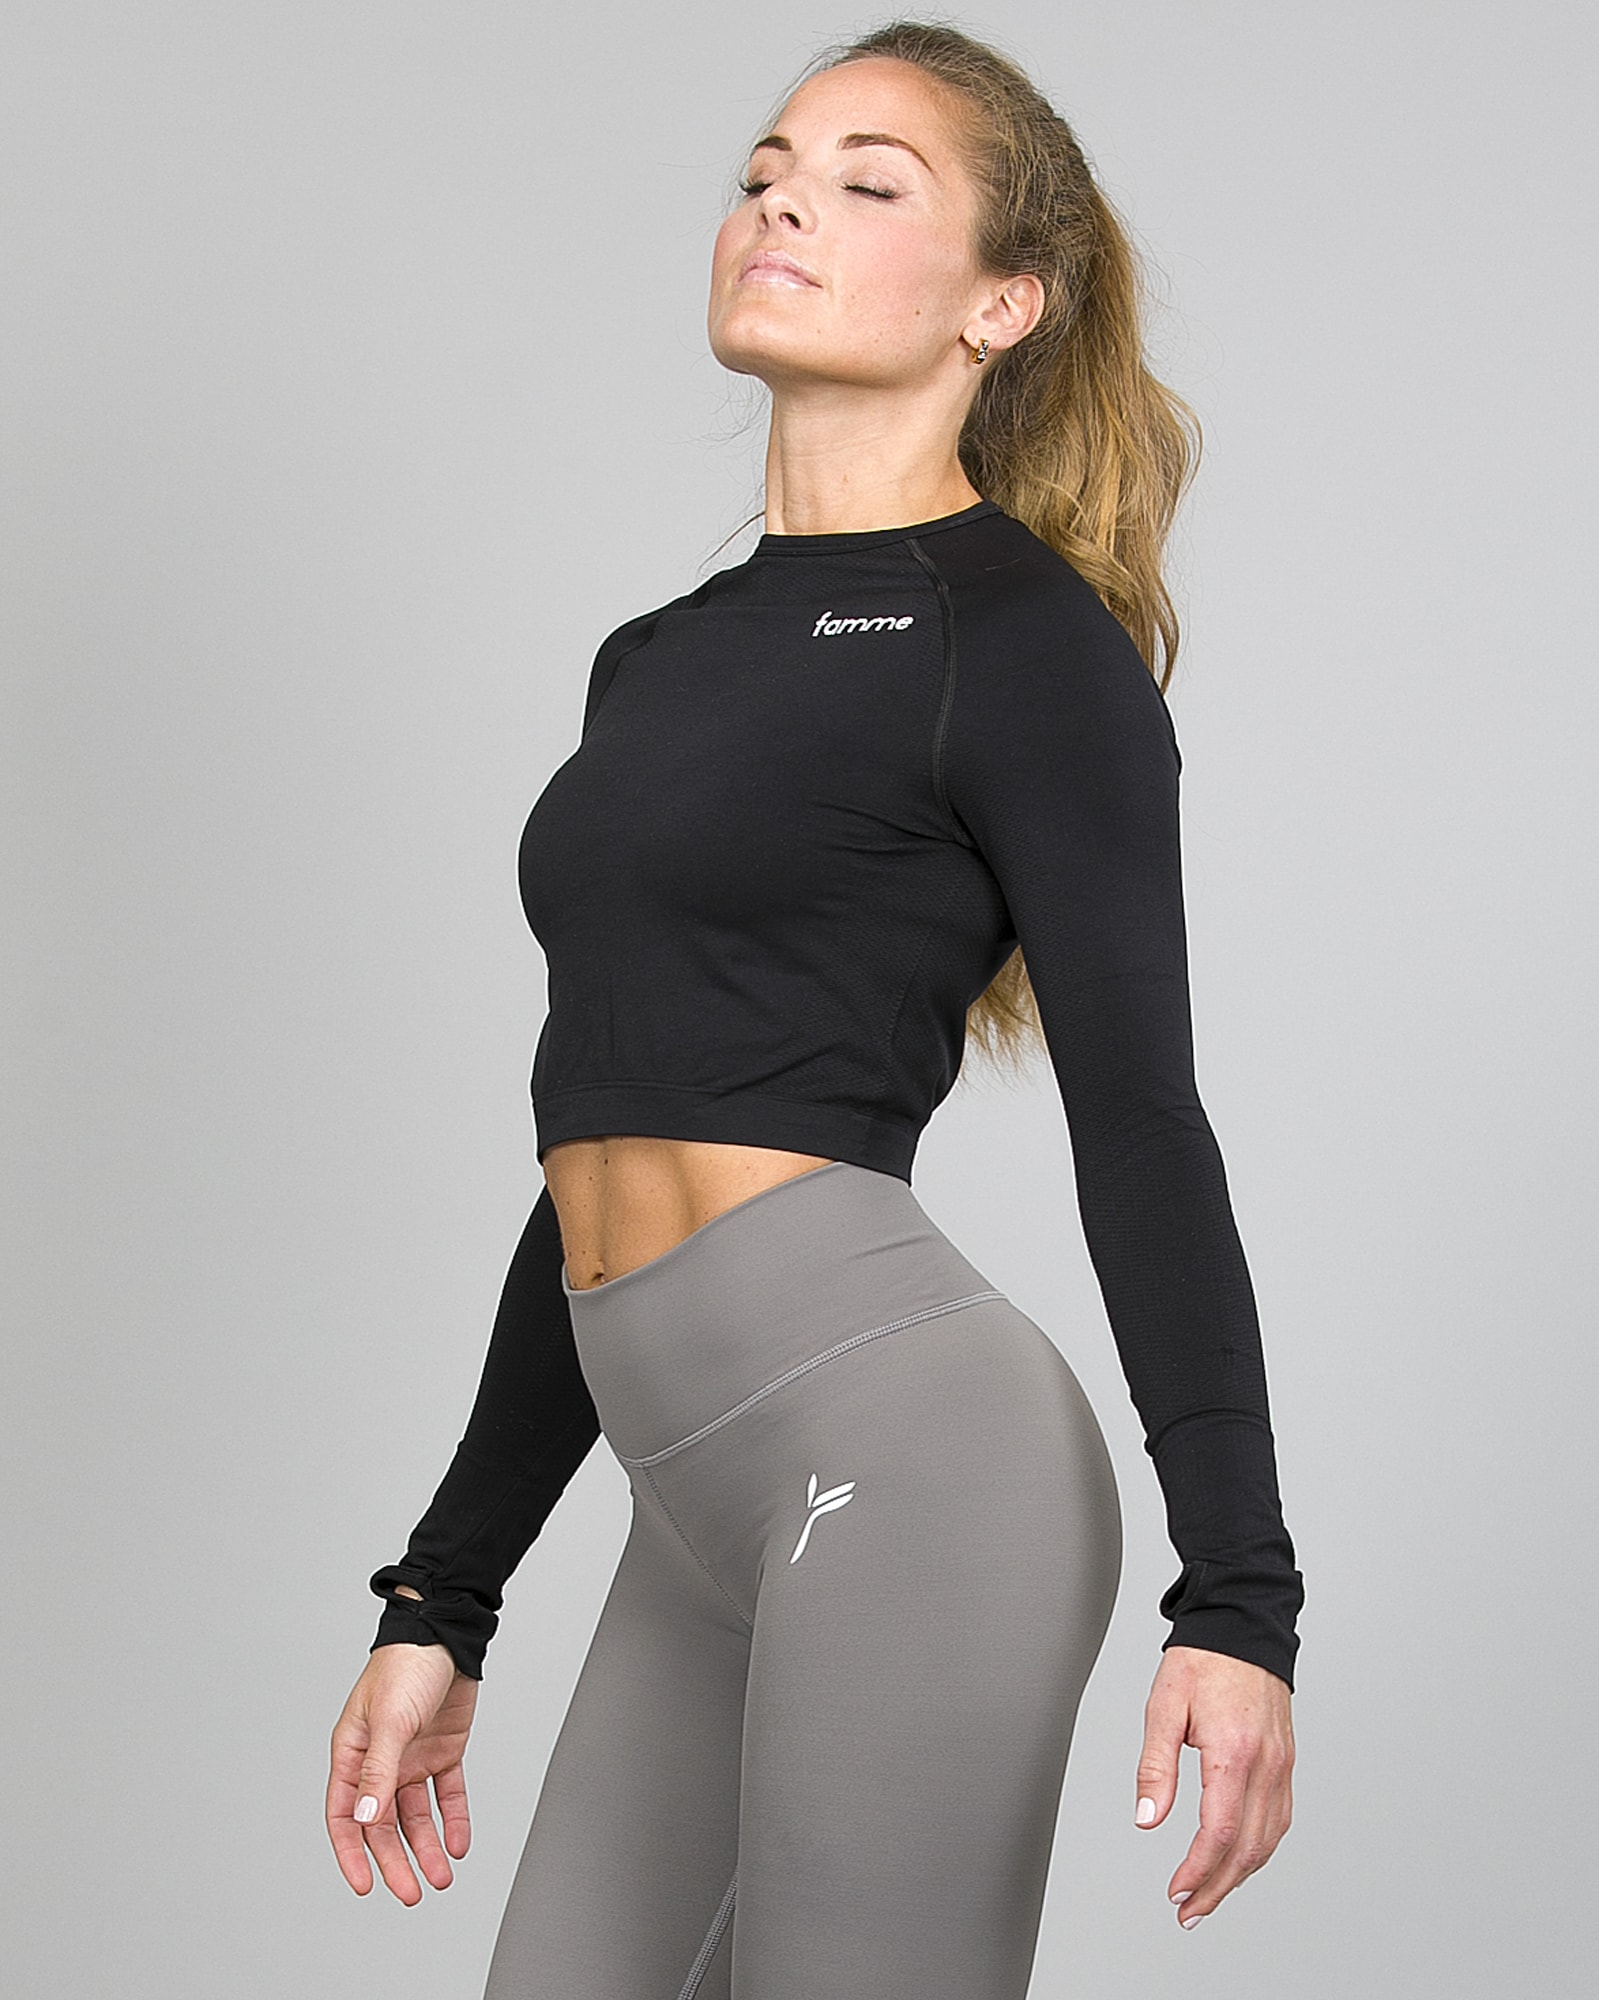 amme Ocean Crop Top Black ocls-bk and Essential High Waist Legging - Grey ehwt-gr c